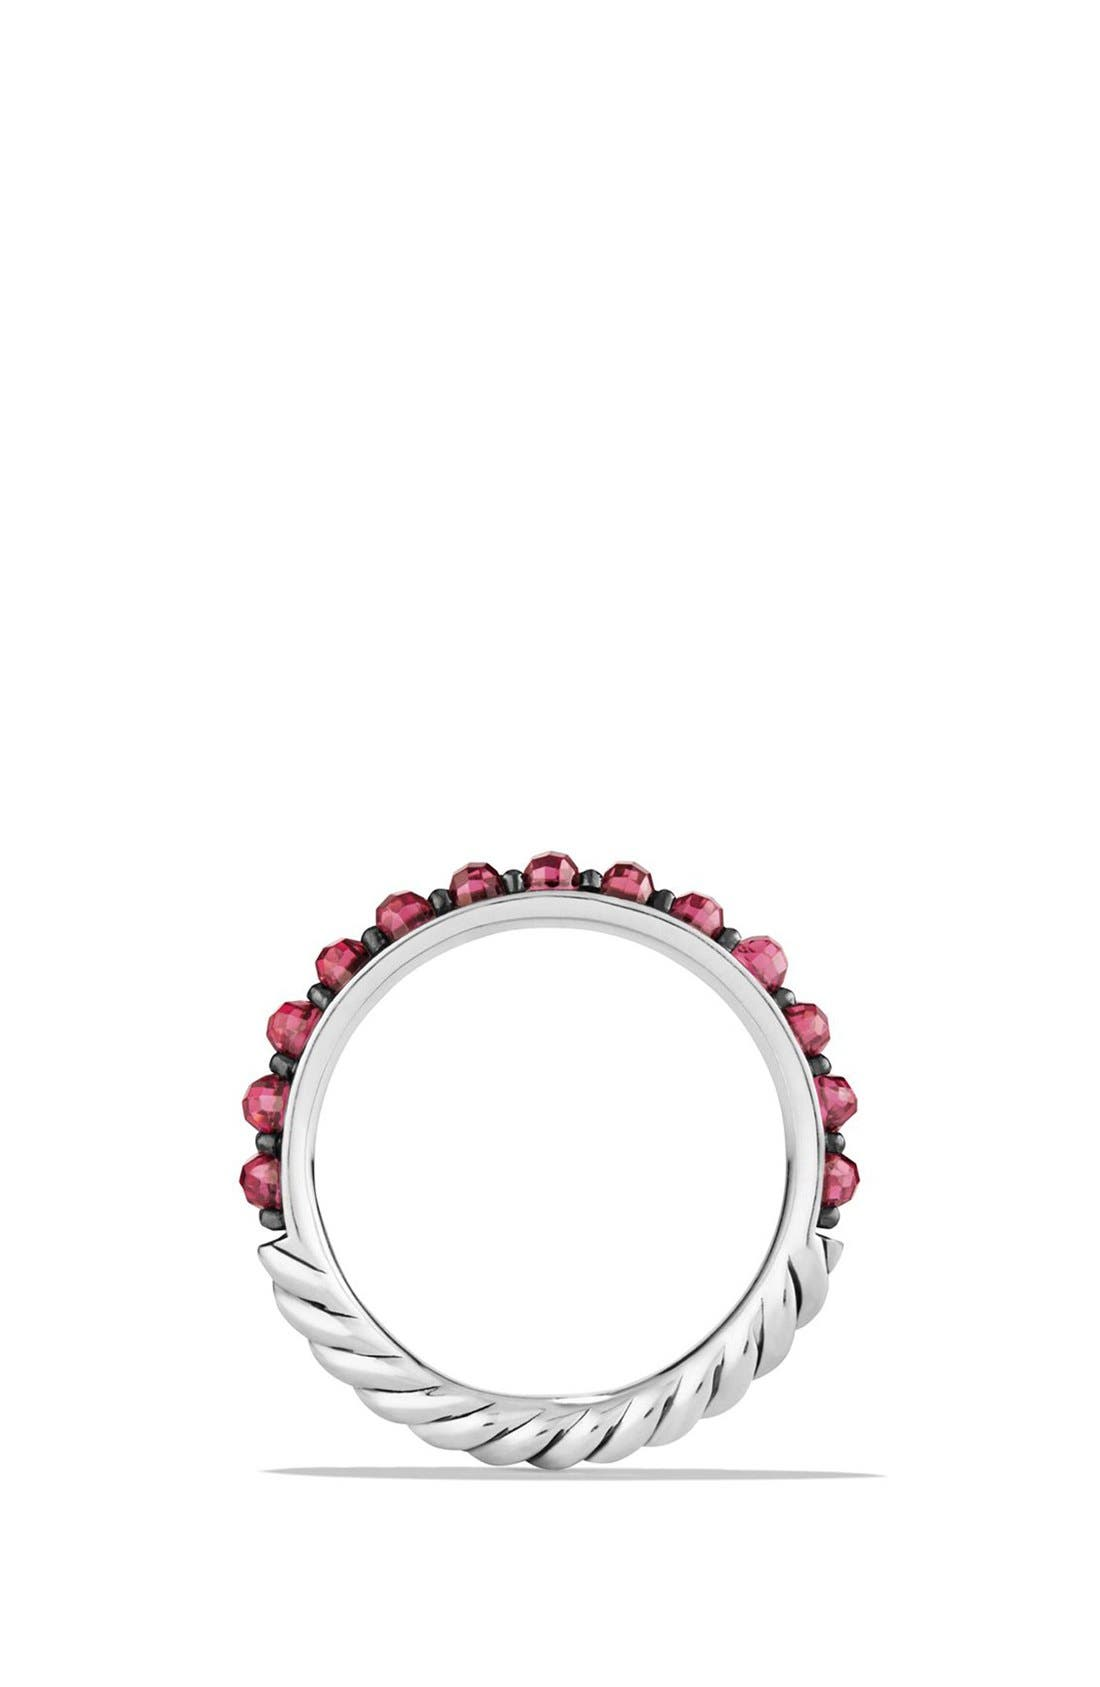 Cable Berries Band Ring,                             Alternate thumbnail 2, color,                             RHODALITE